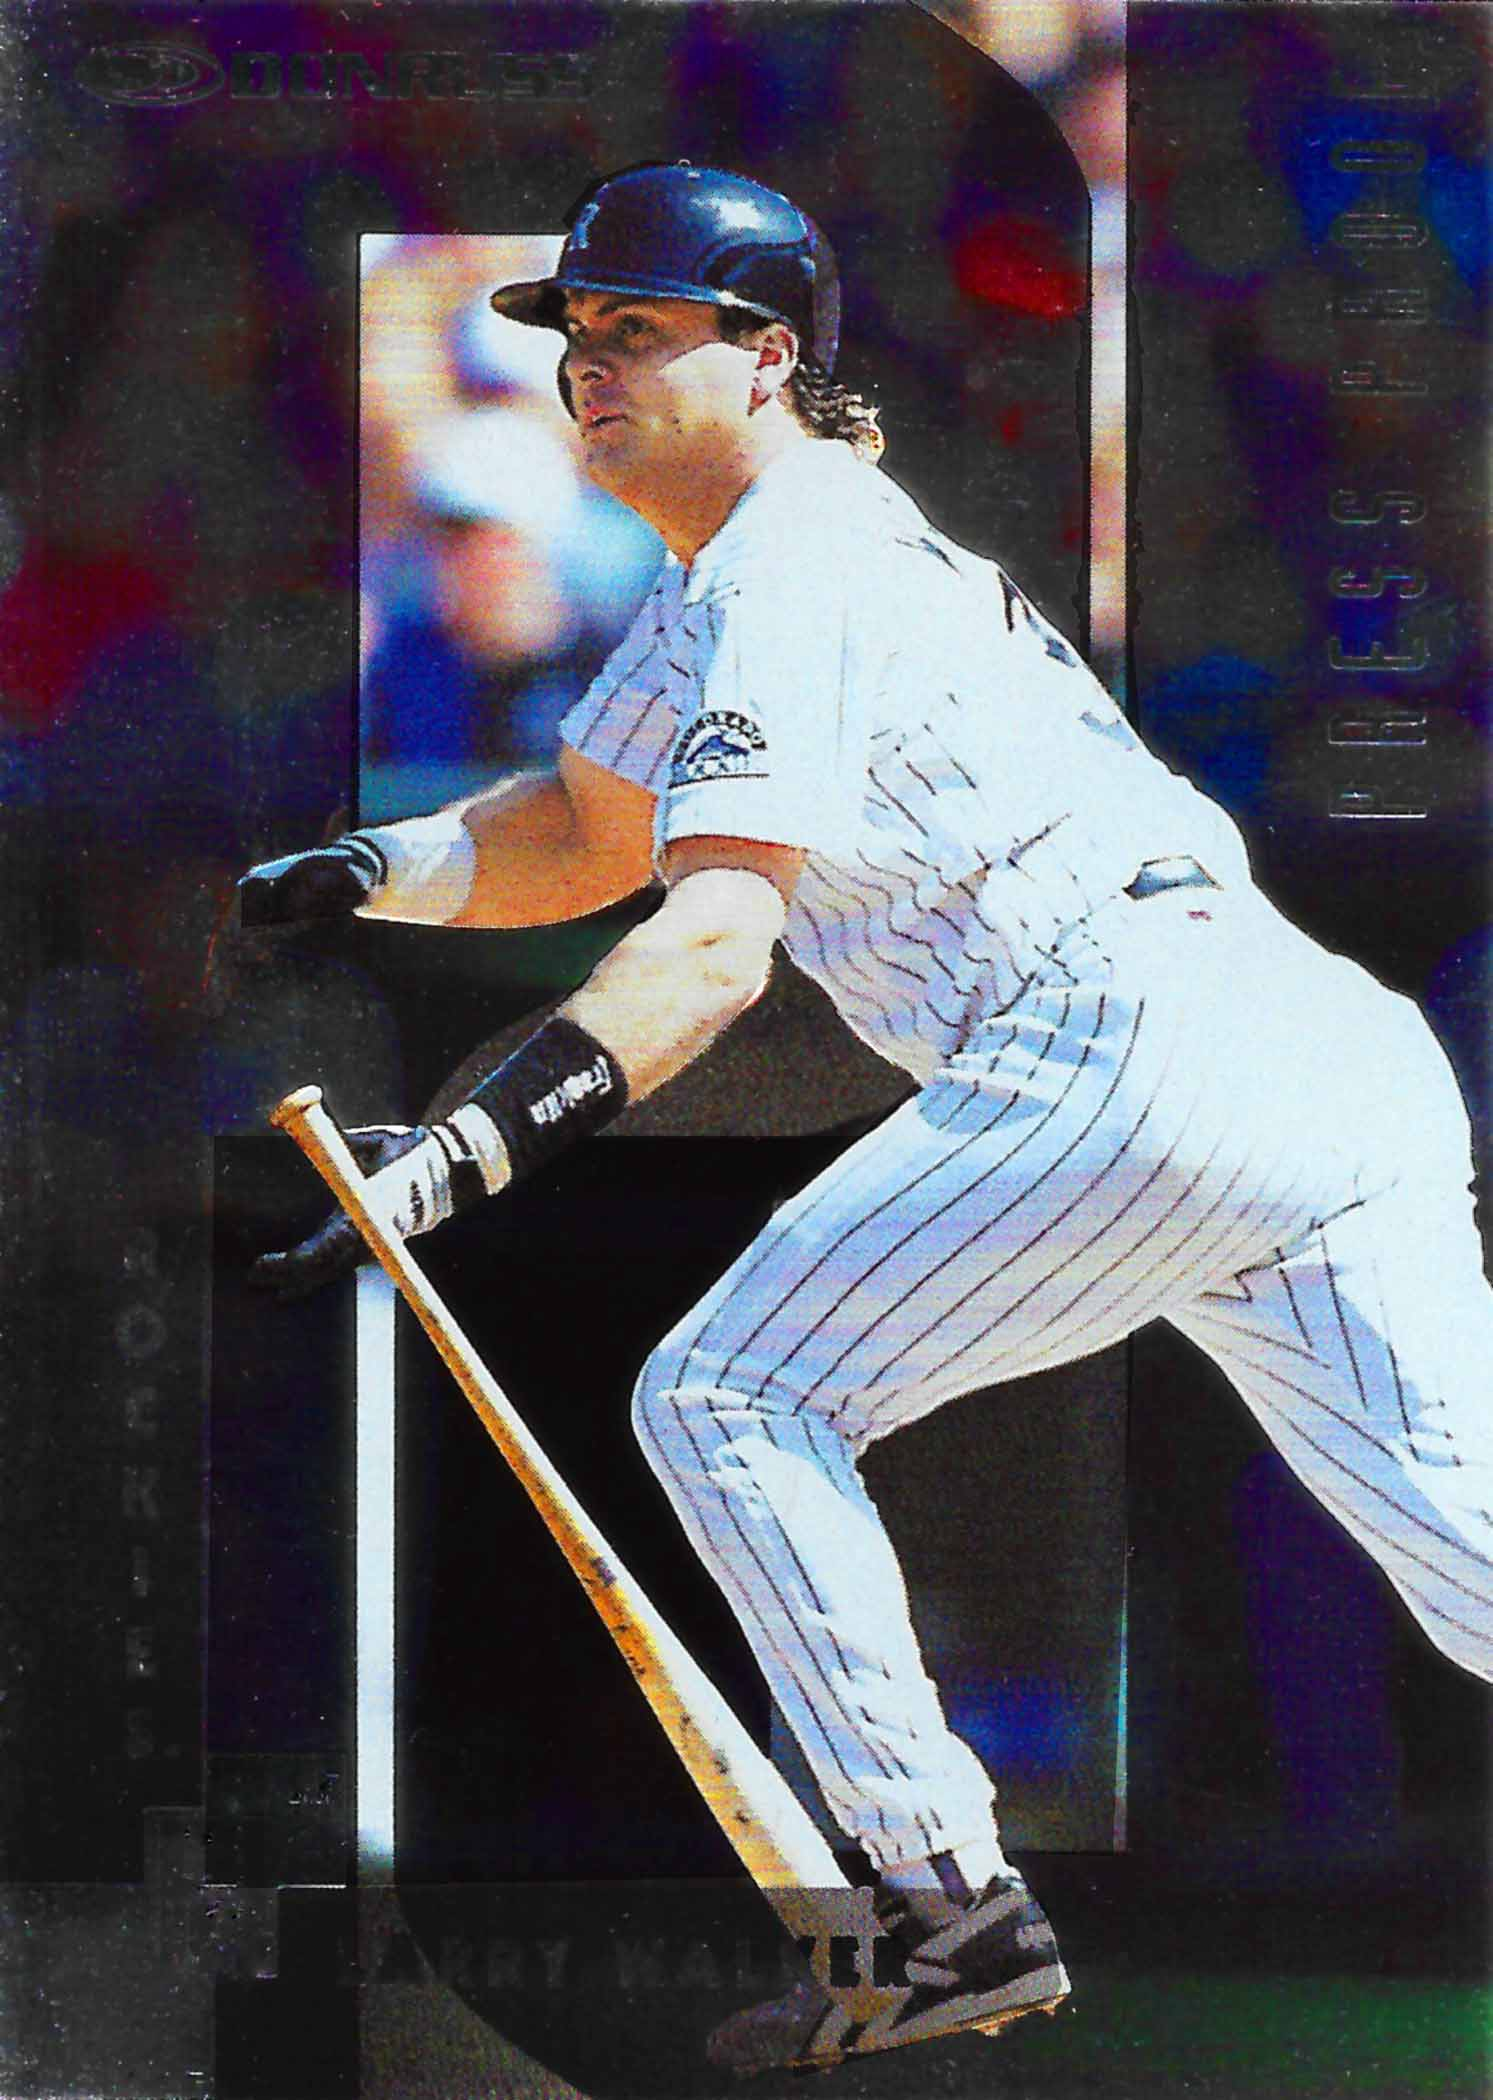 1997 Donruss Limited Double Team